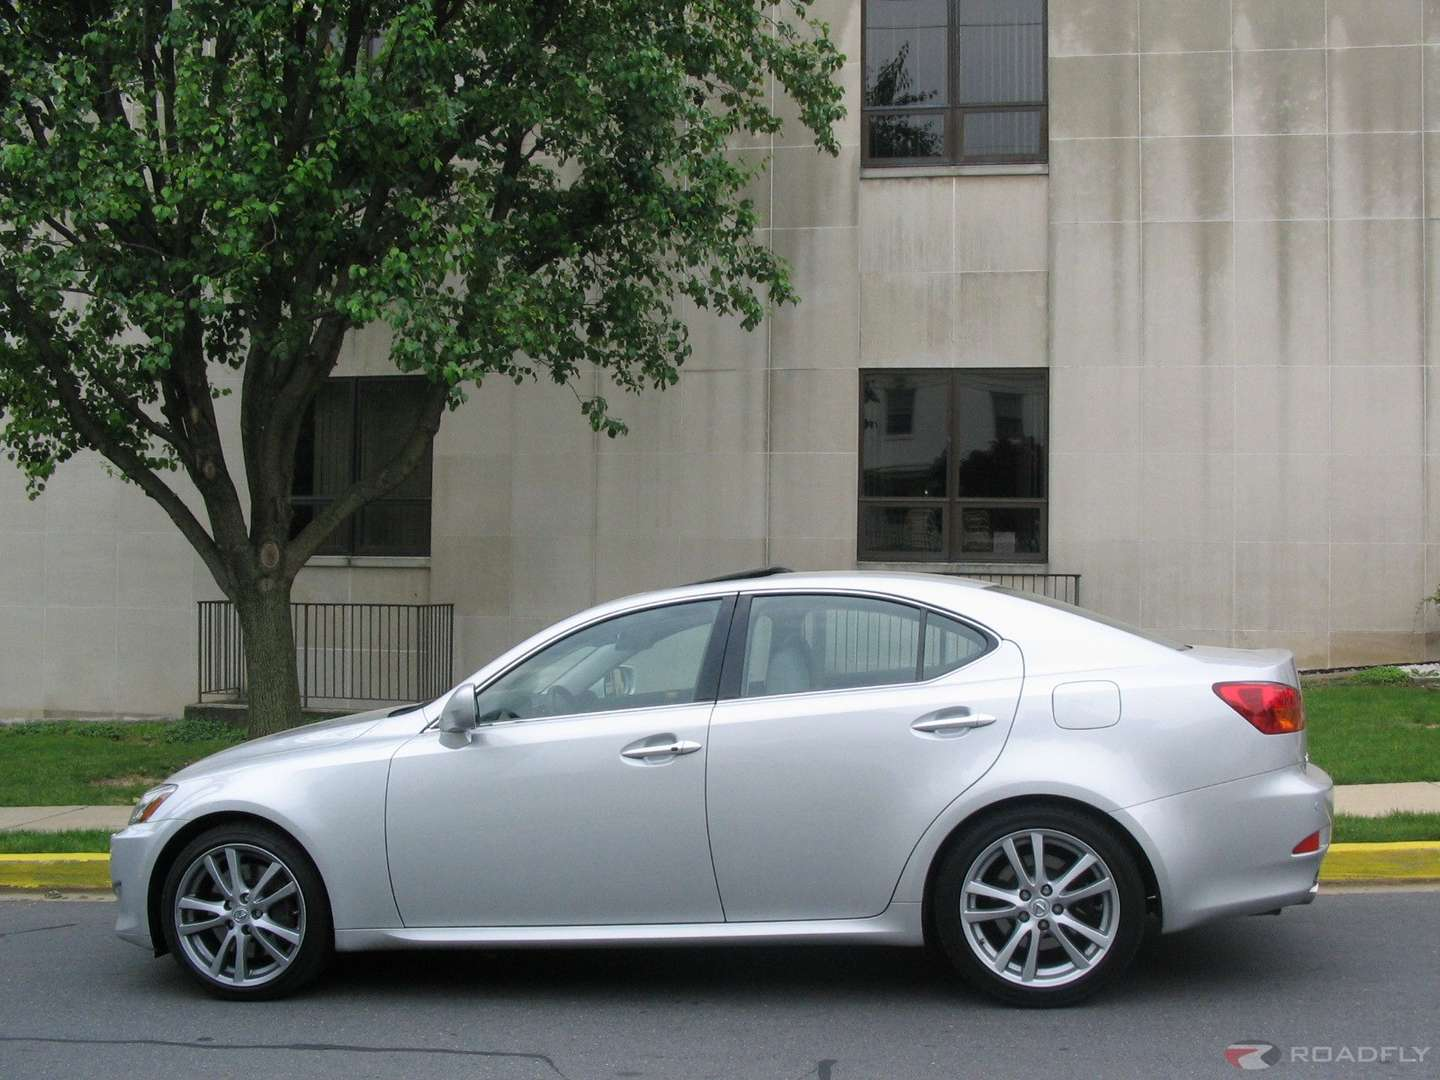 Lexus IS 350 #9499176